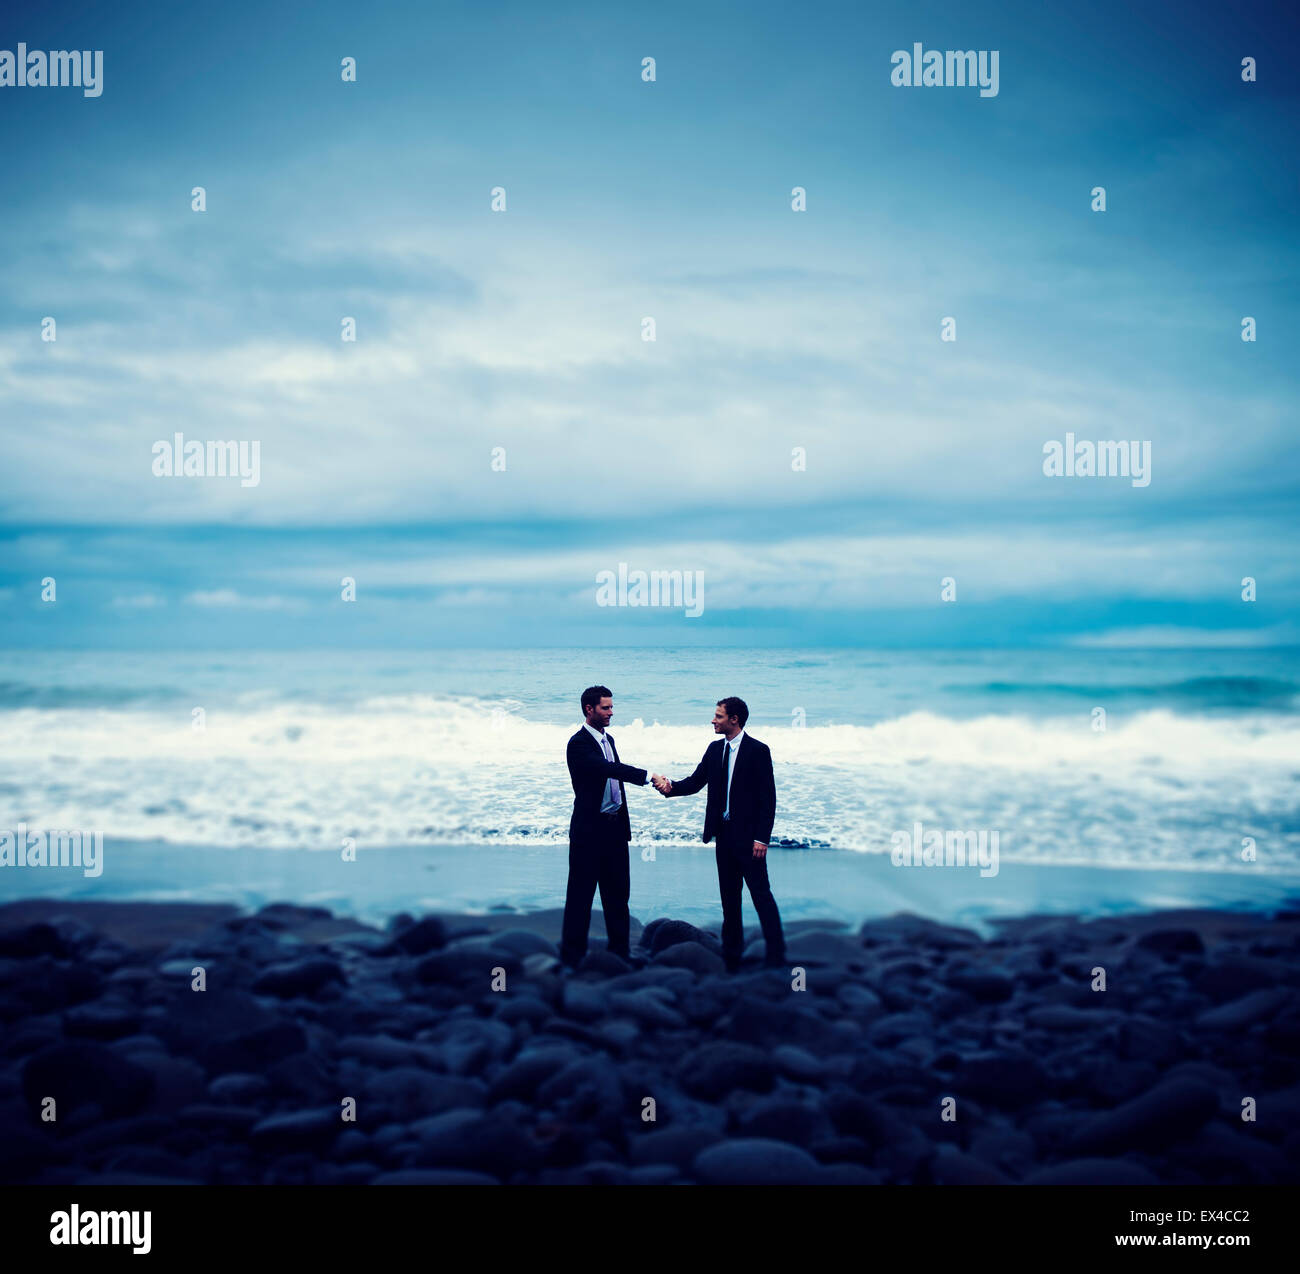 L'engagement des hommes d'Handshake Beach Concept Relaxatiion Photo Stock